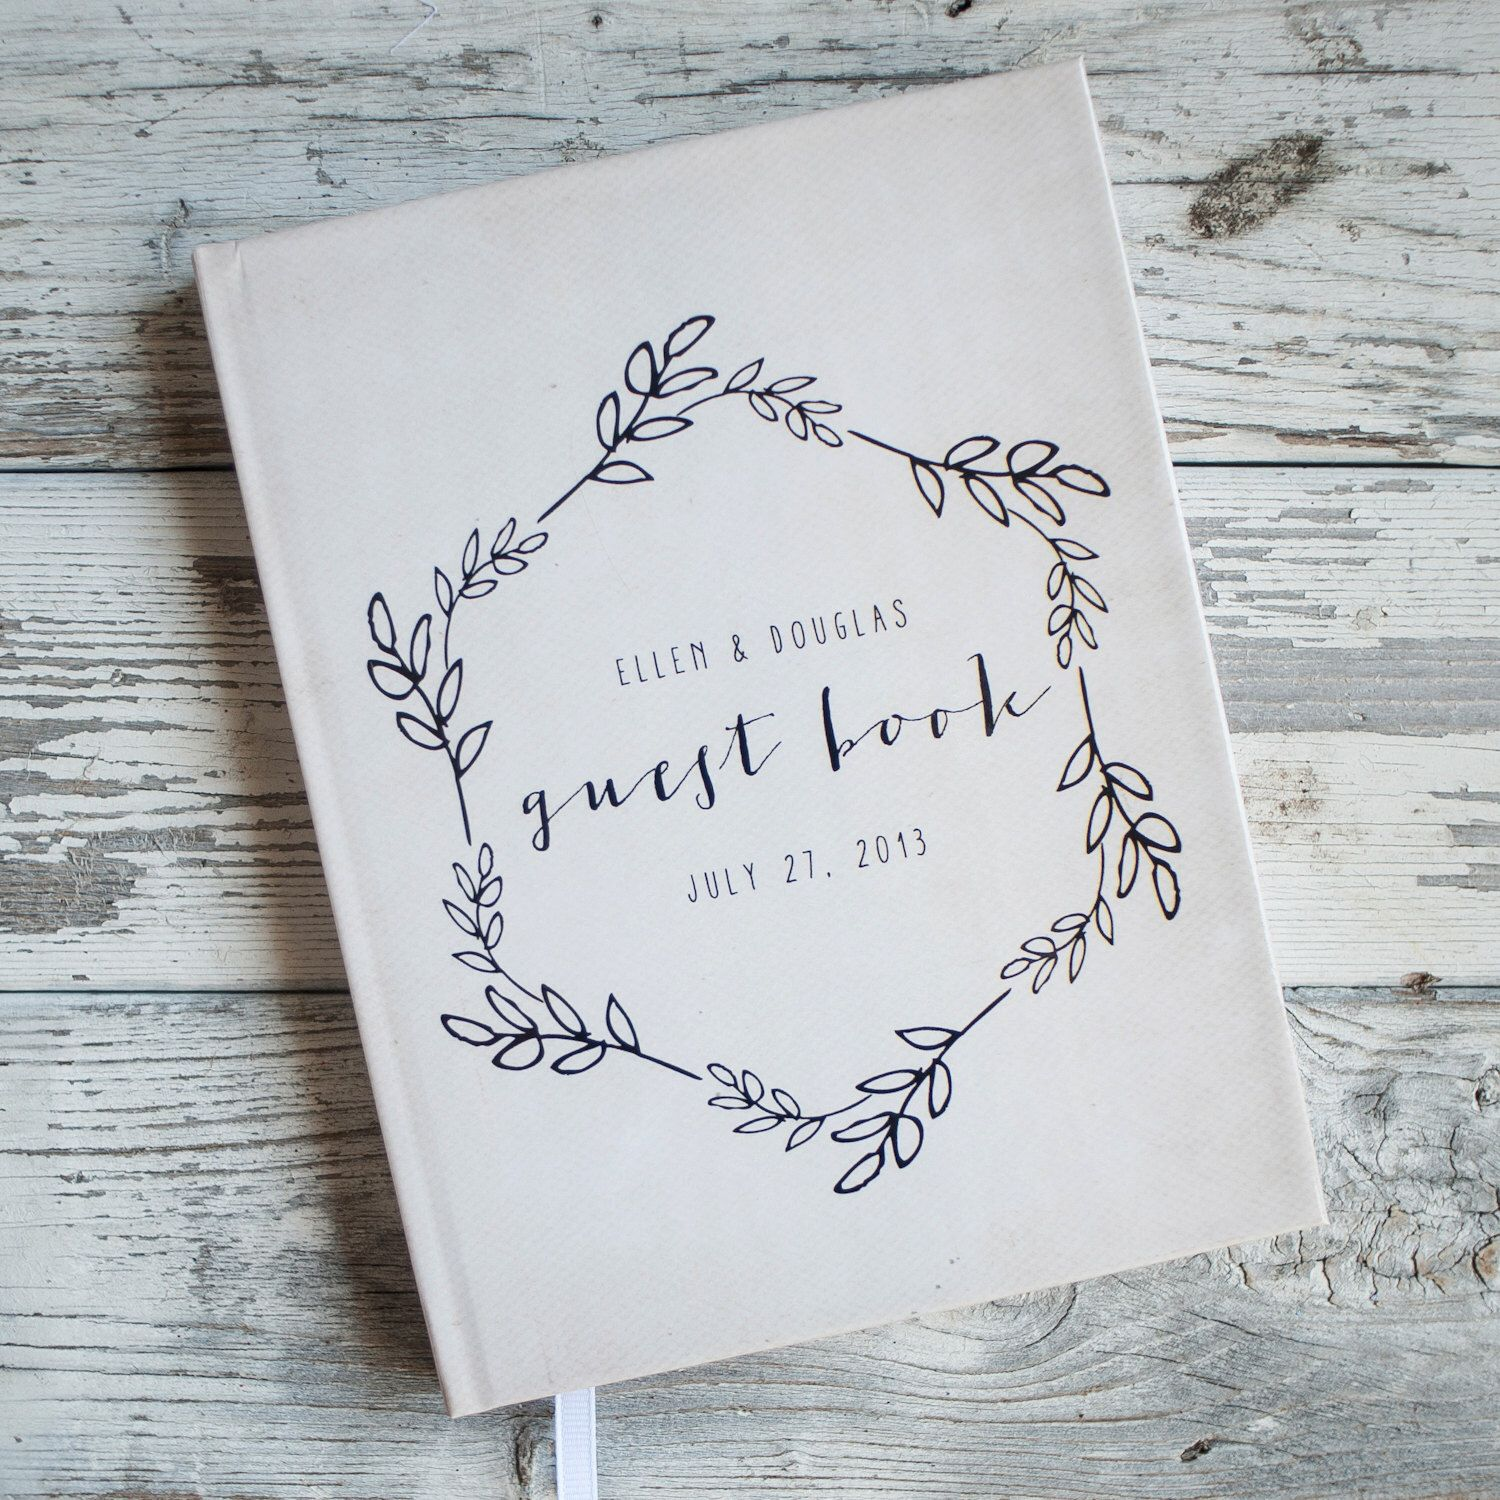 Wedding Guest Book Guestbook Custom Personalized Customized Design Gift Keepsake Rustic Wreath By Starboardpress On